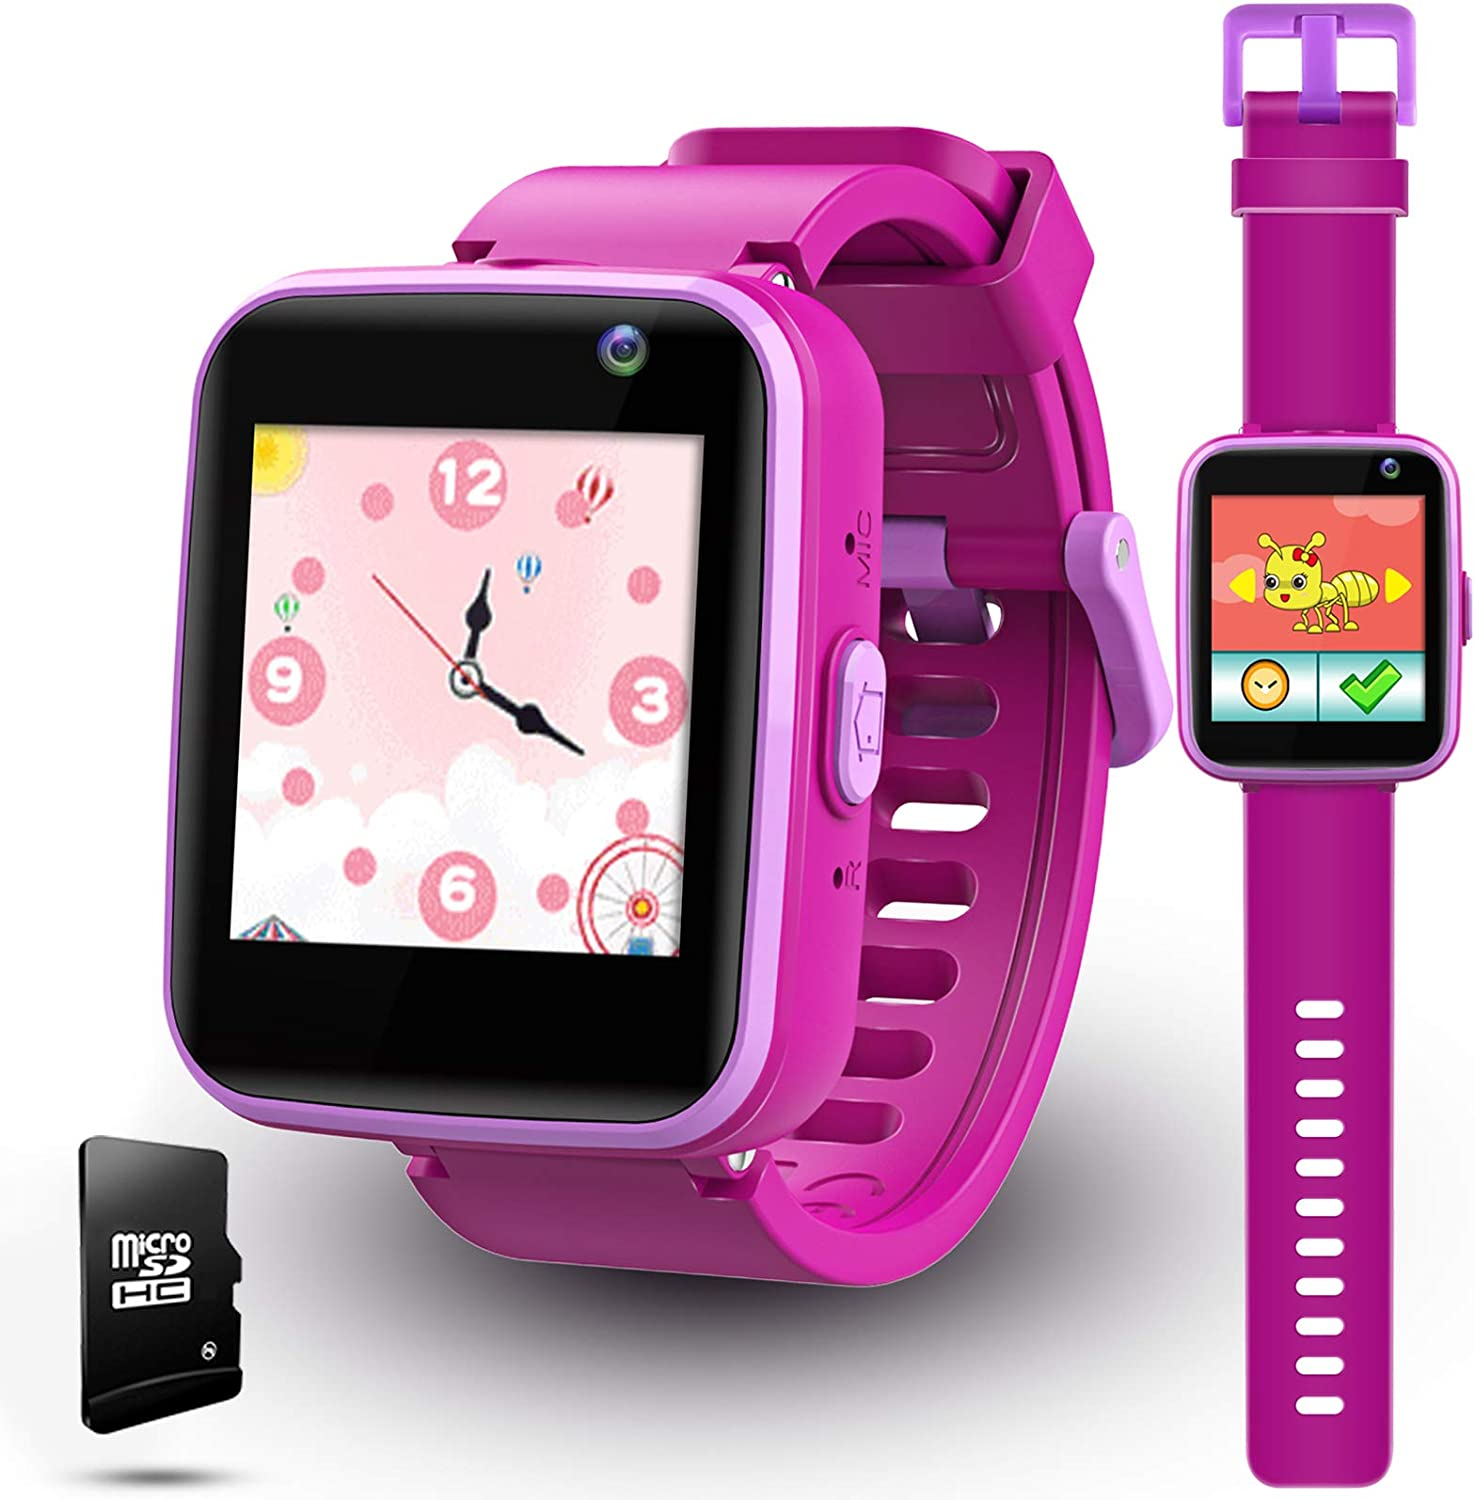 lzndeal Kids Smart Watch with Games, Kids Toys for Girlss Age 5-12 Year Old, Kids Watches Girls 5-7, Easter Toy Gift for Boy & Girls - (Purple)